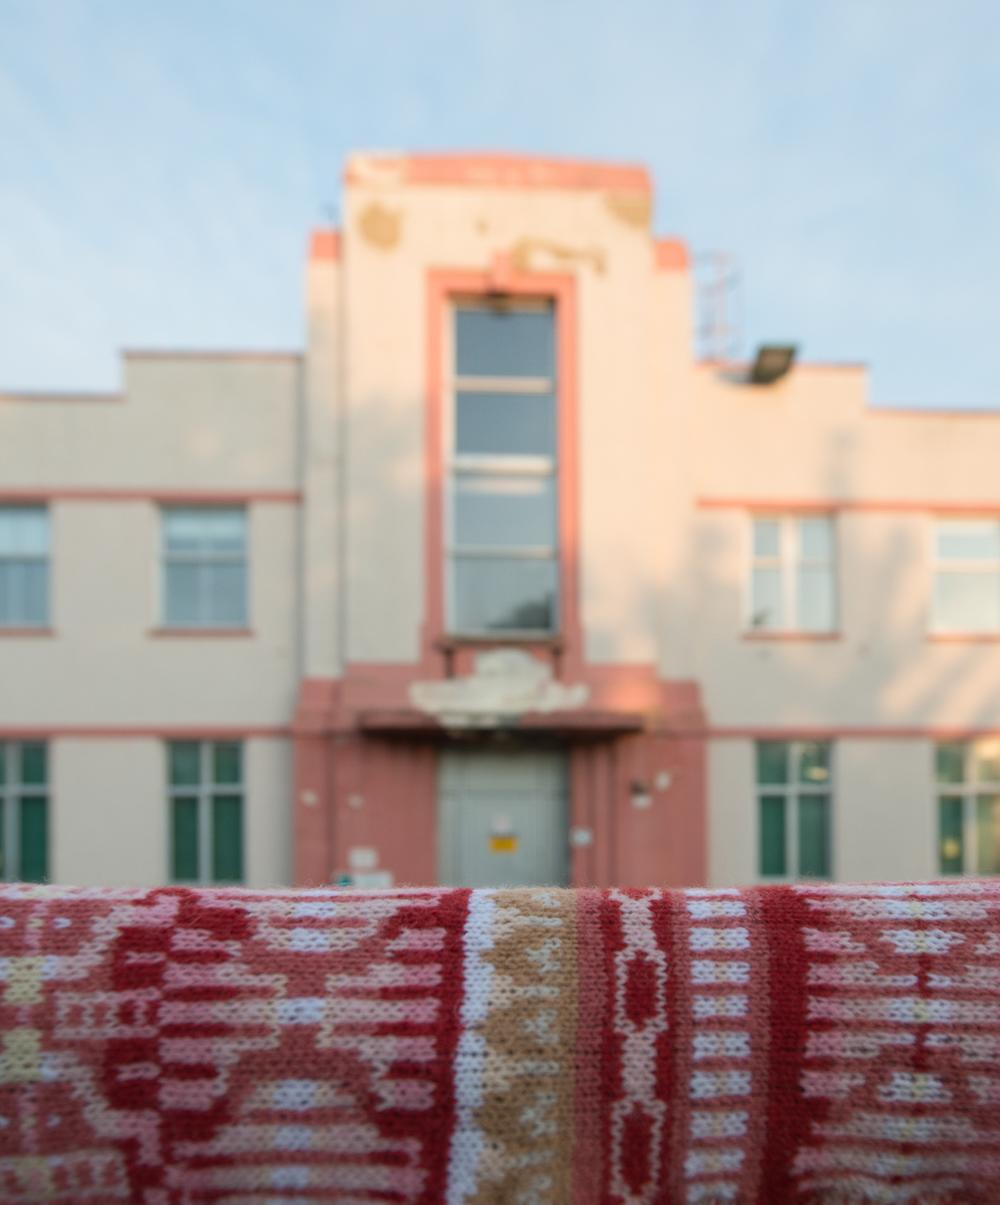 Pink art-deco style factory building presented alongside knitted interpretation